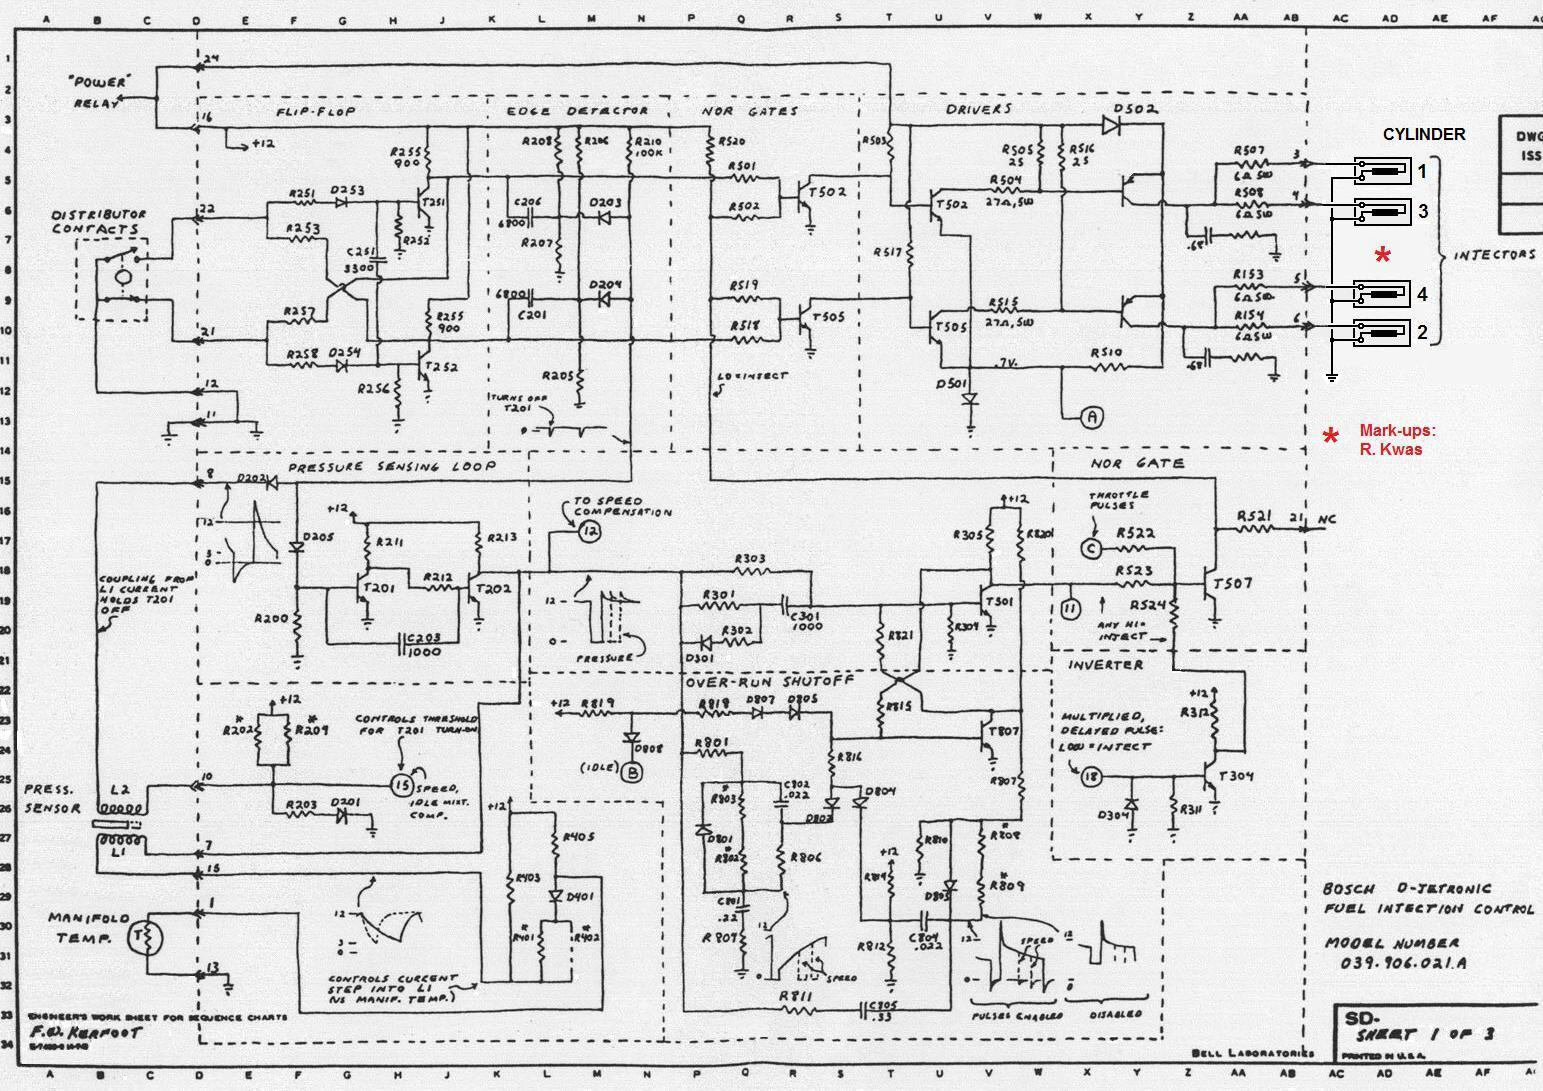 Bosch Ecu Wiring Diagram 24 Images Mercedes D Jetronic Schematic1 Touchedup Jet Notes Pdf At